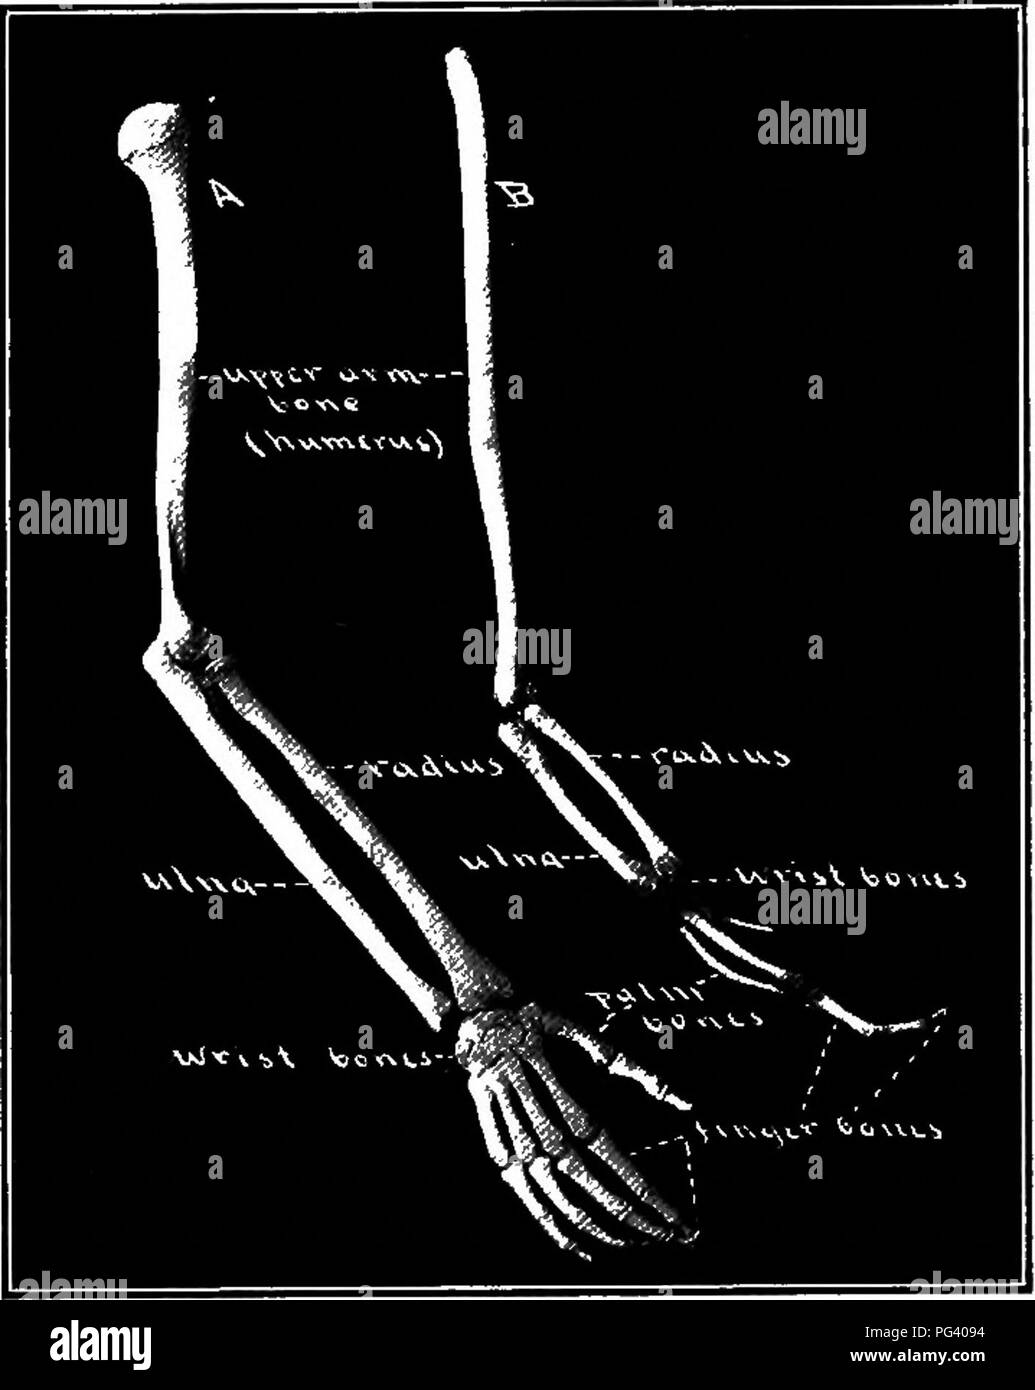 Arm Bones Black And White Stock Photos Images Alamy Of Chicken Wing Diagram Elementary Biology Animal Human 66 Are Two